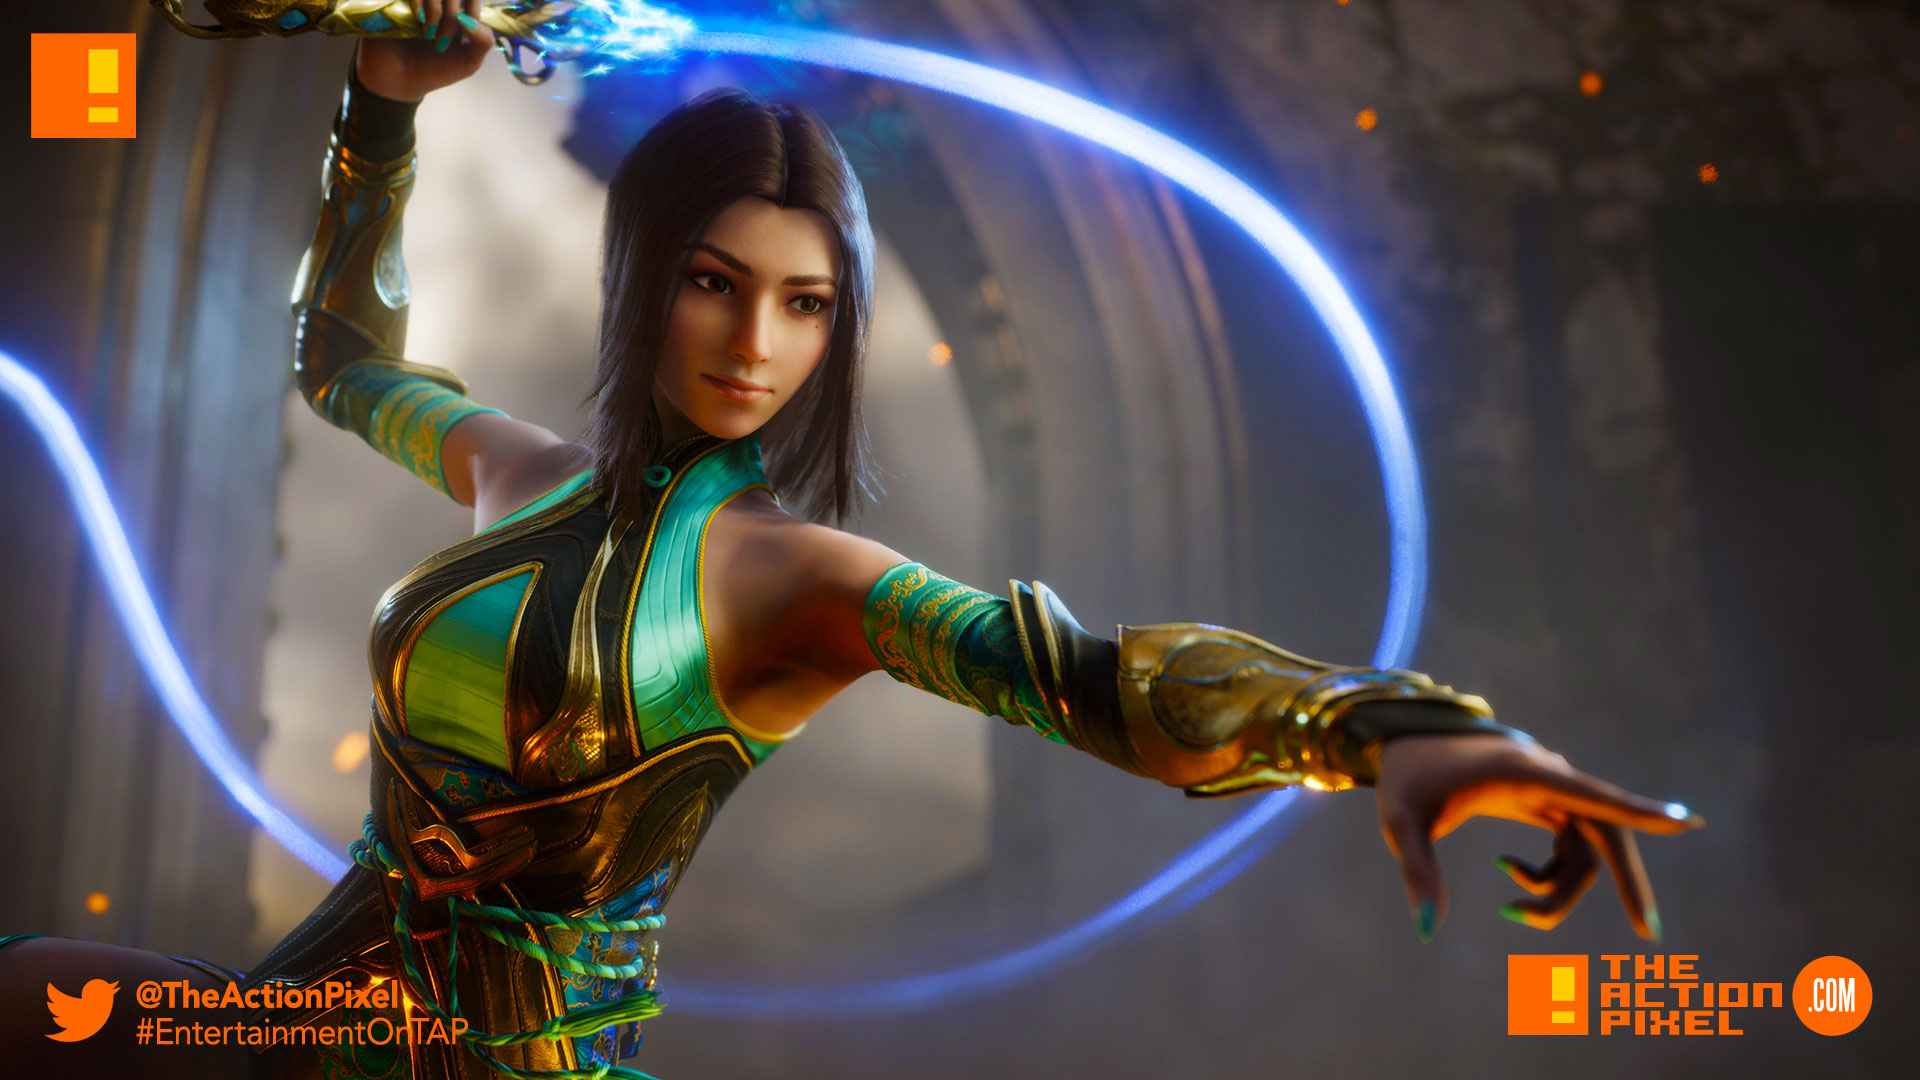 paragon, yin, moba, epic games, trailer, wind,whip, the action pixel, entertainment on tap